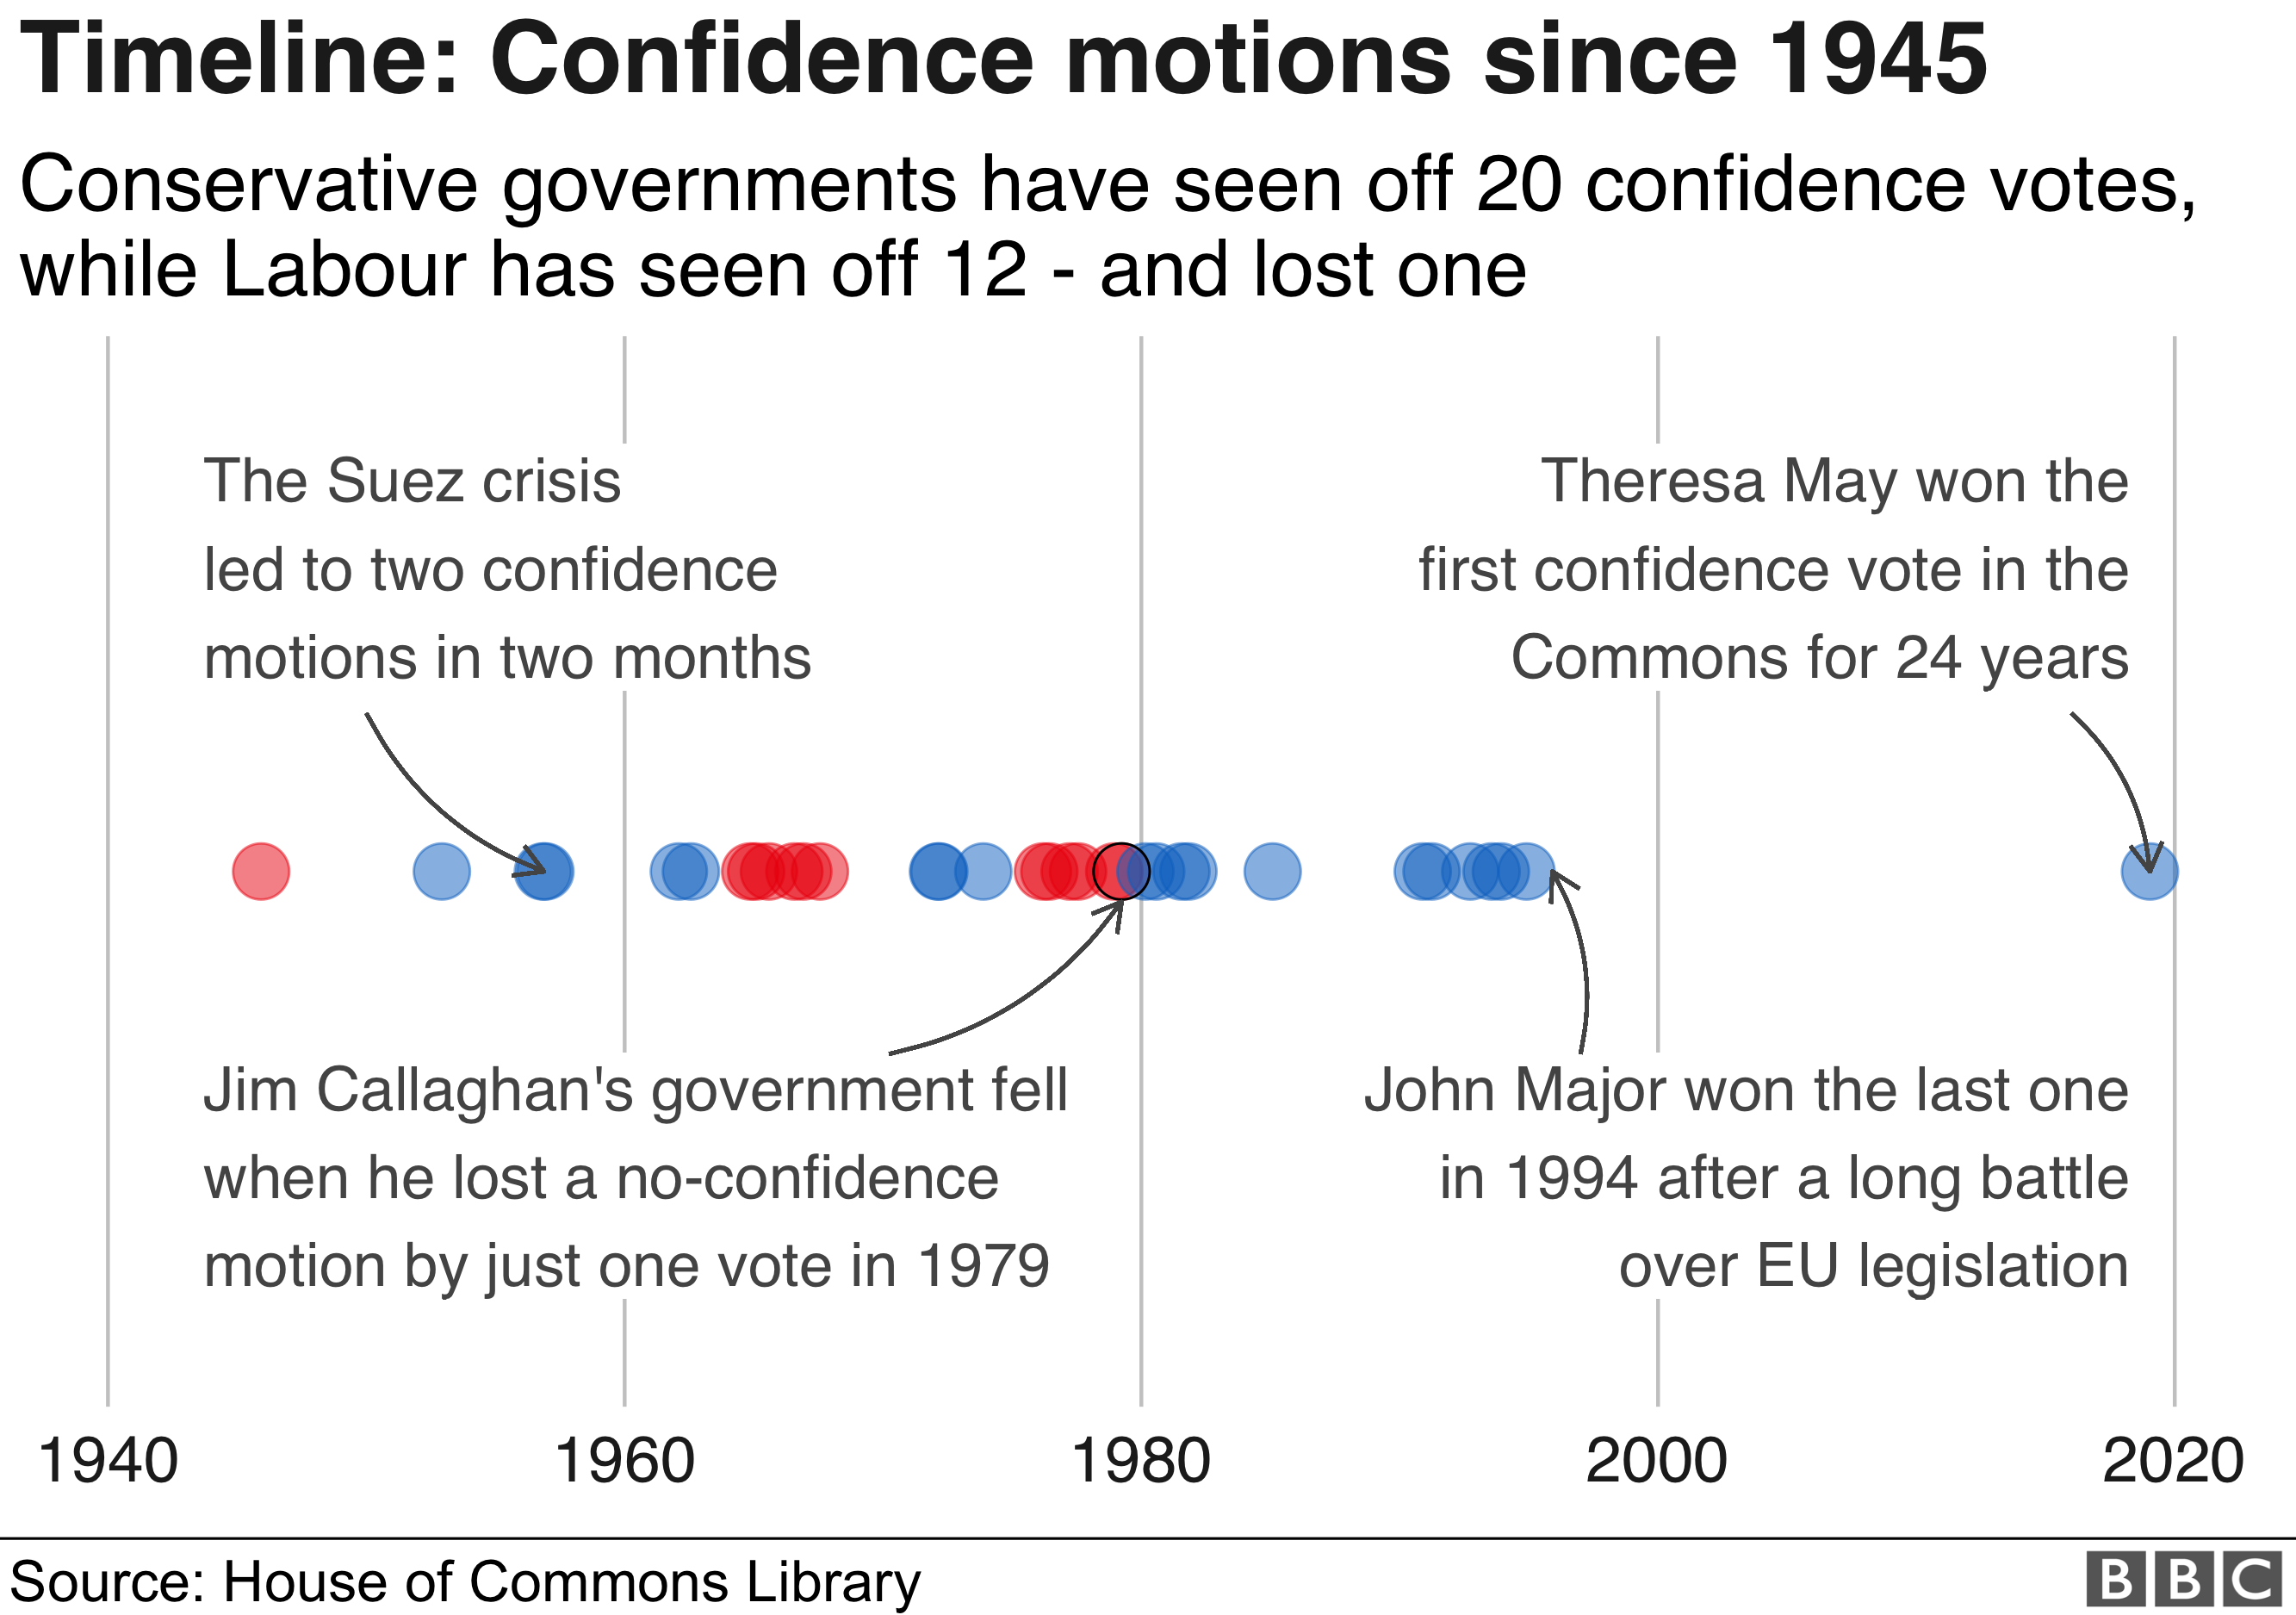 Chart showing timeline of confidence motions since 1945